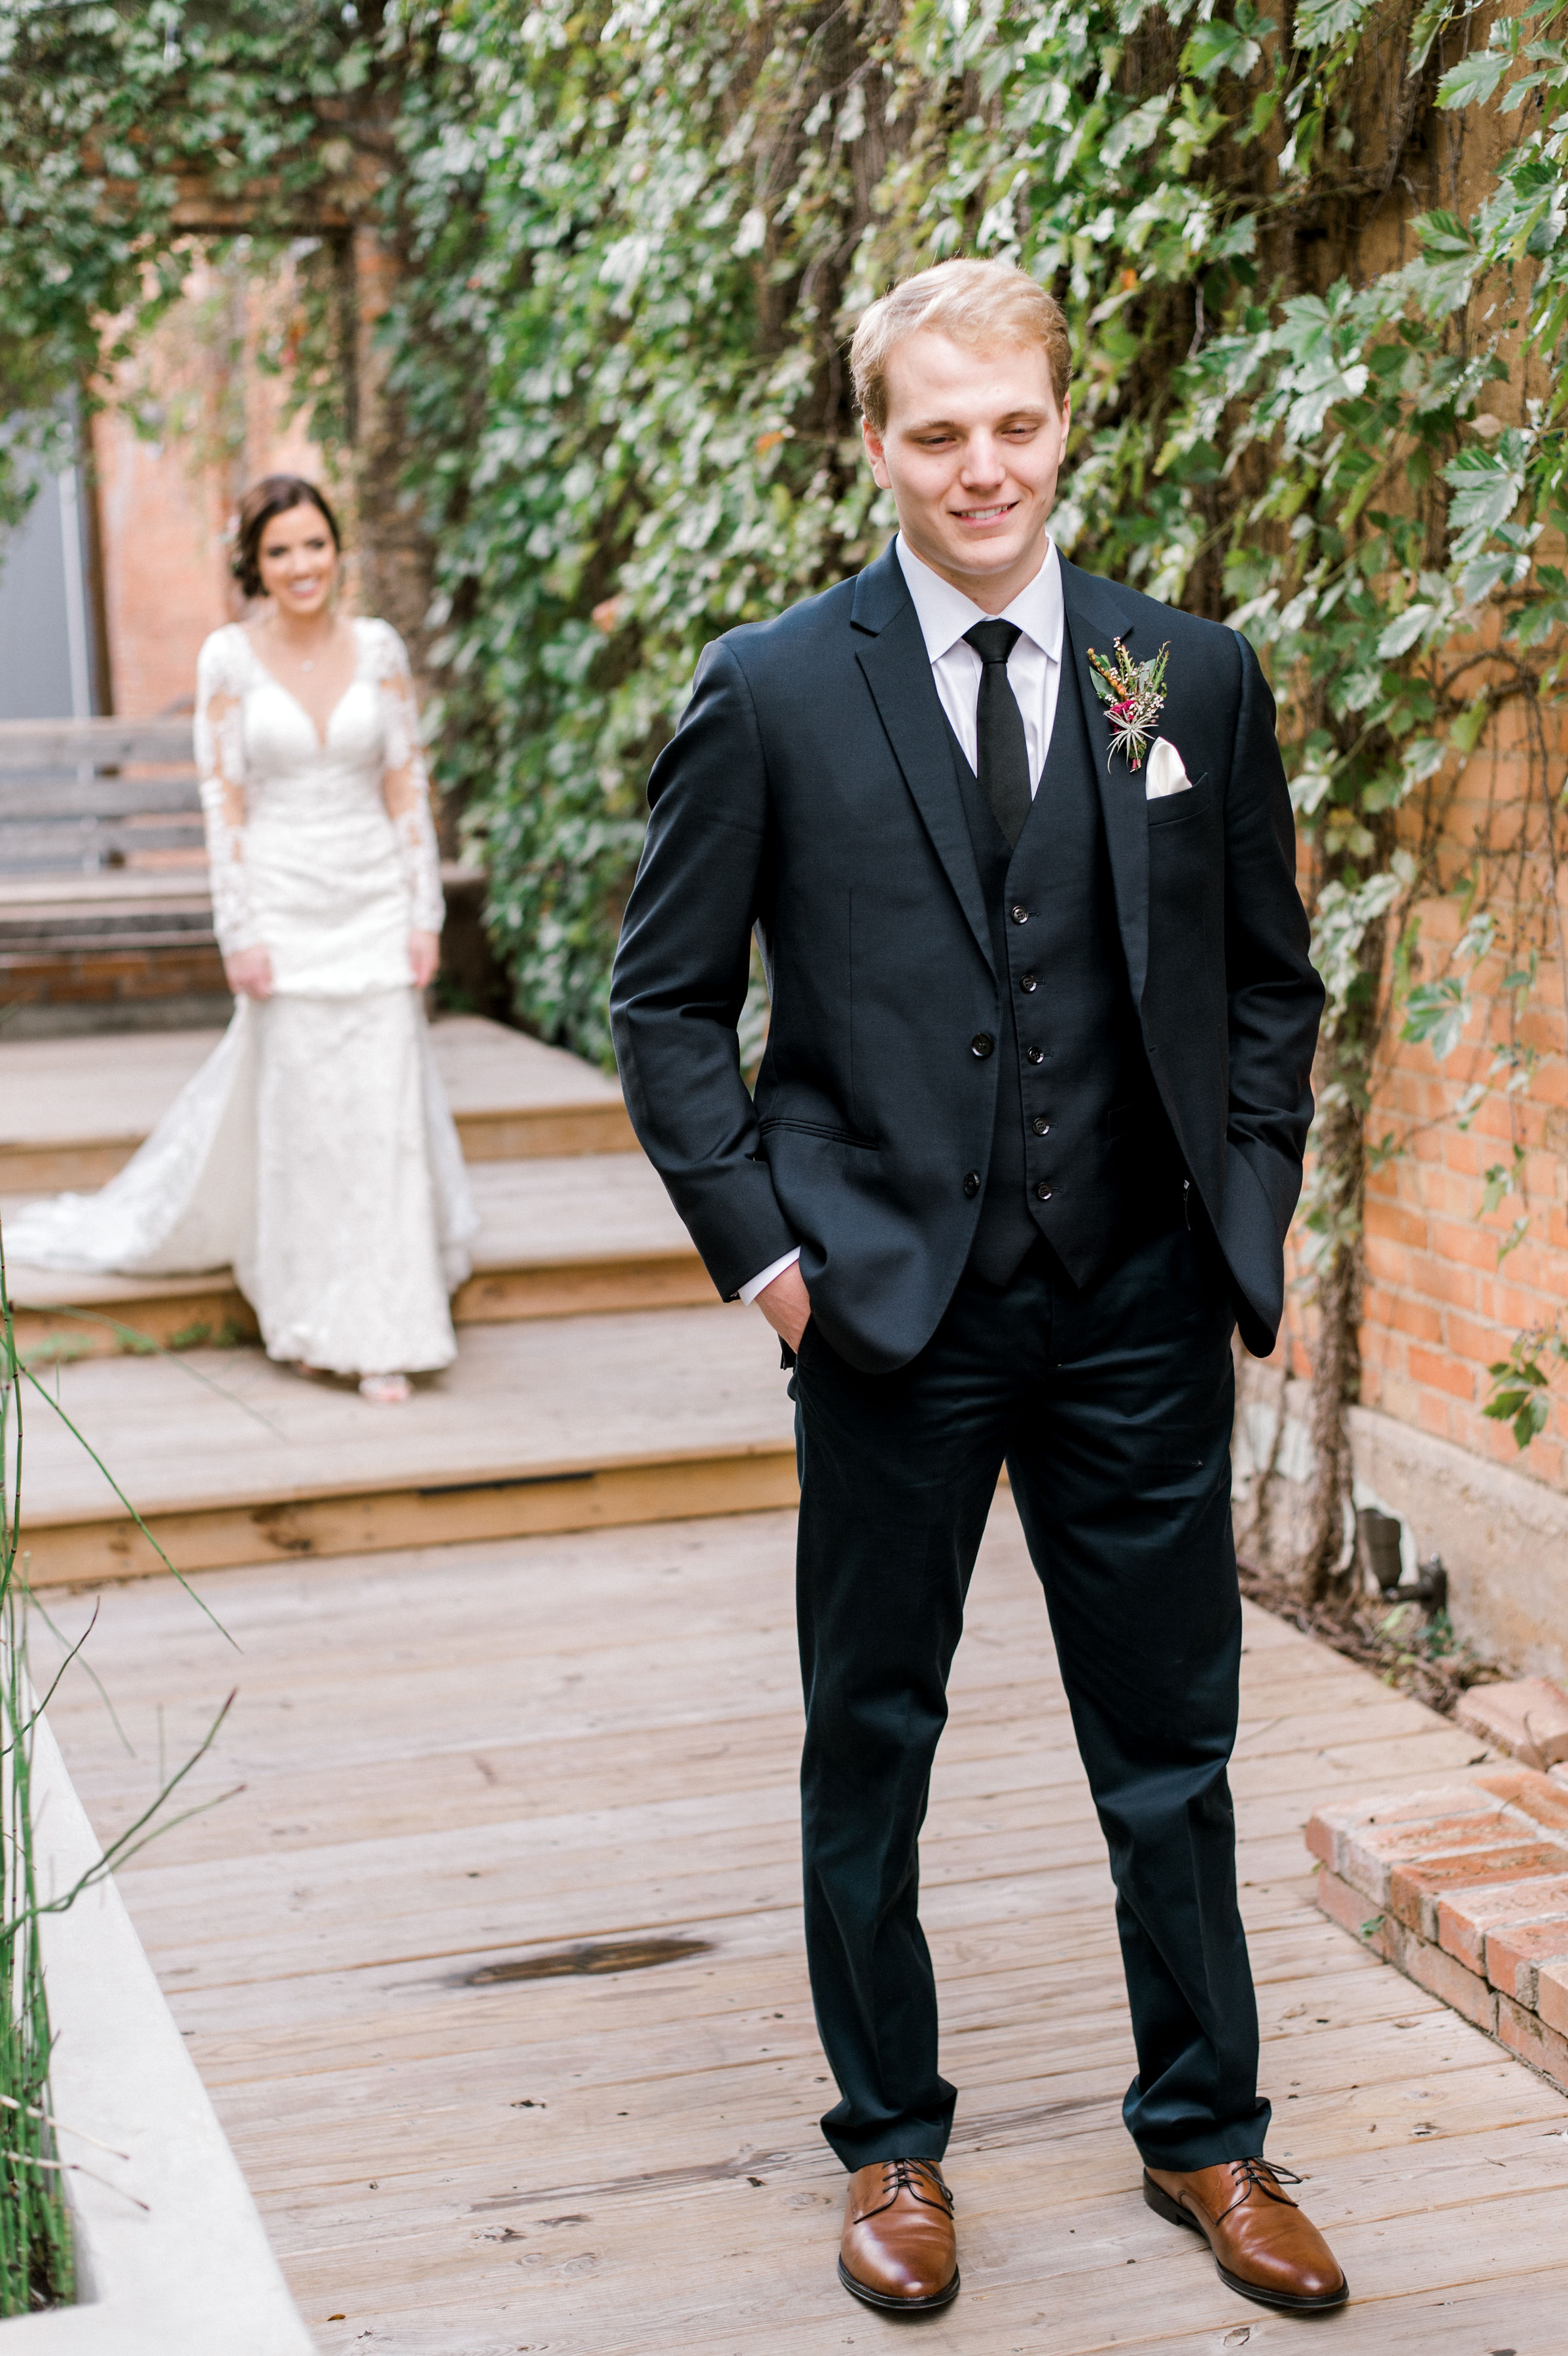 Bride and Groom First Look Photos | Industrial Vintage Wedding Reception in Downtown Fort Worth